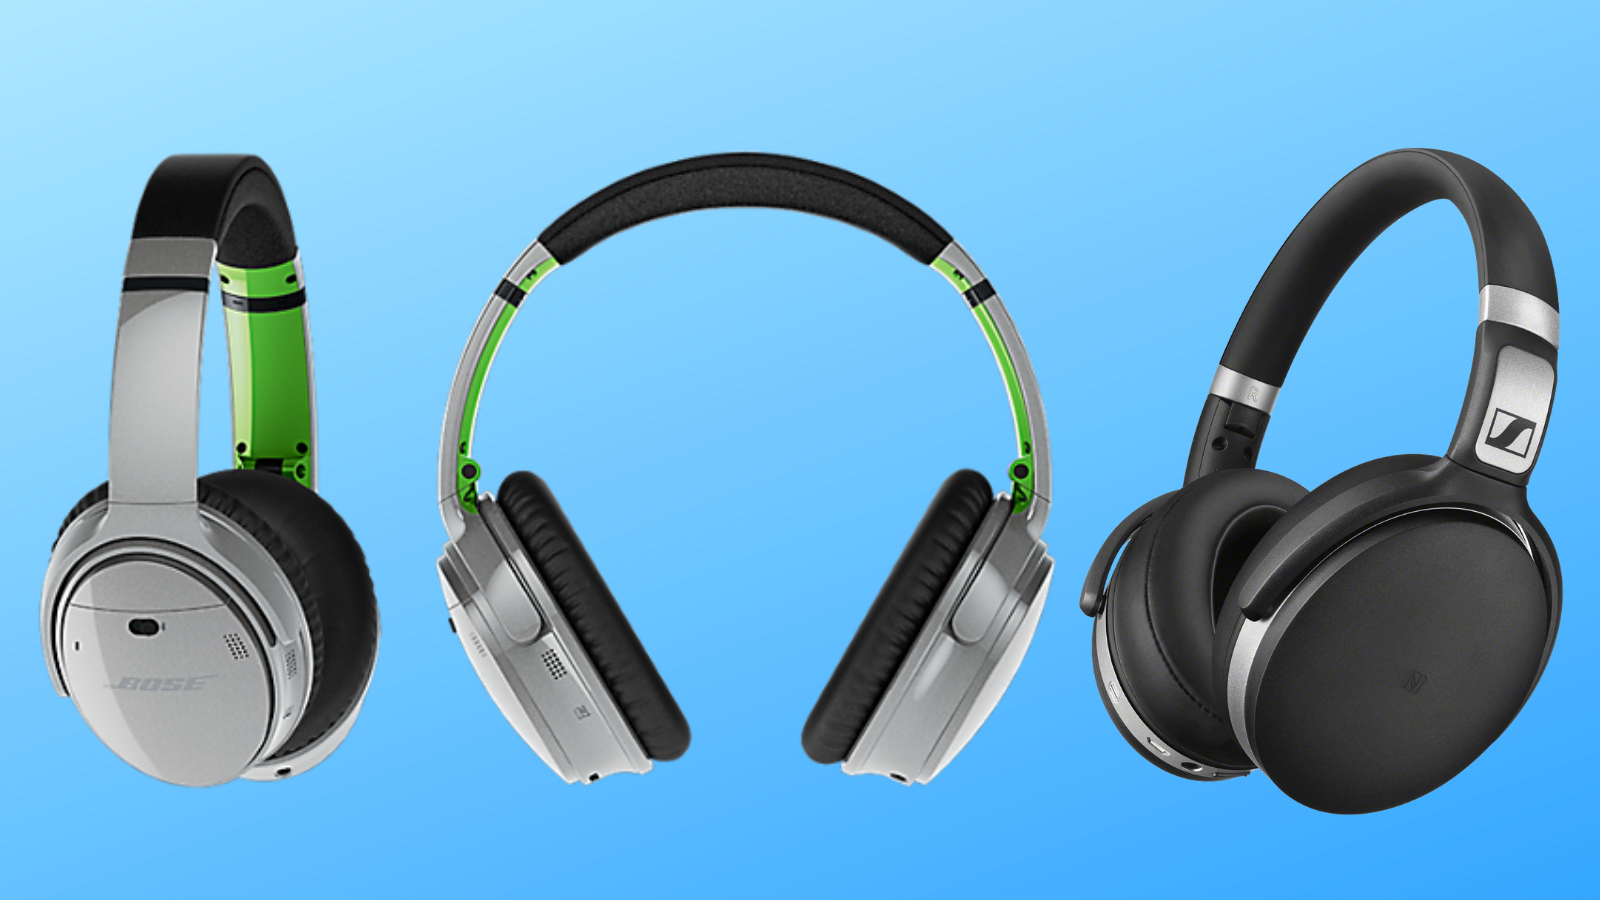 The Best Noise Canceling Headphones For Distraction Free Listening